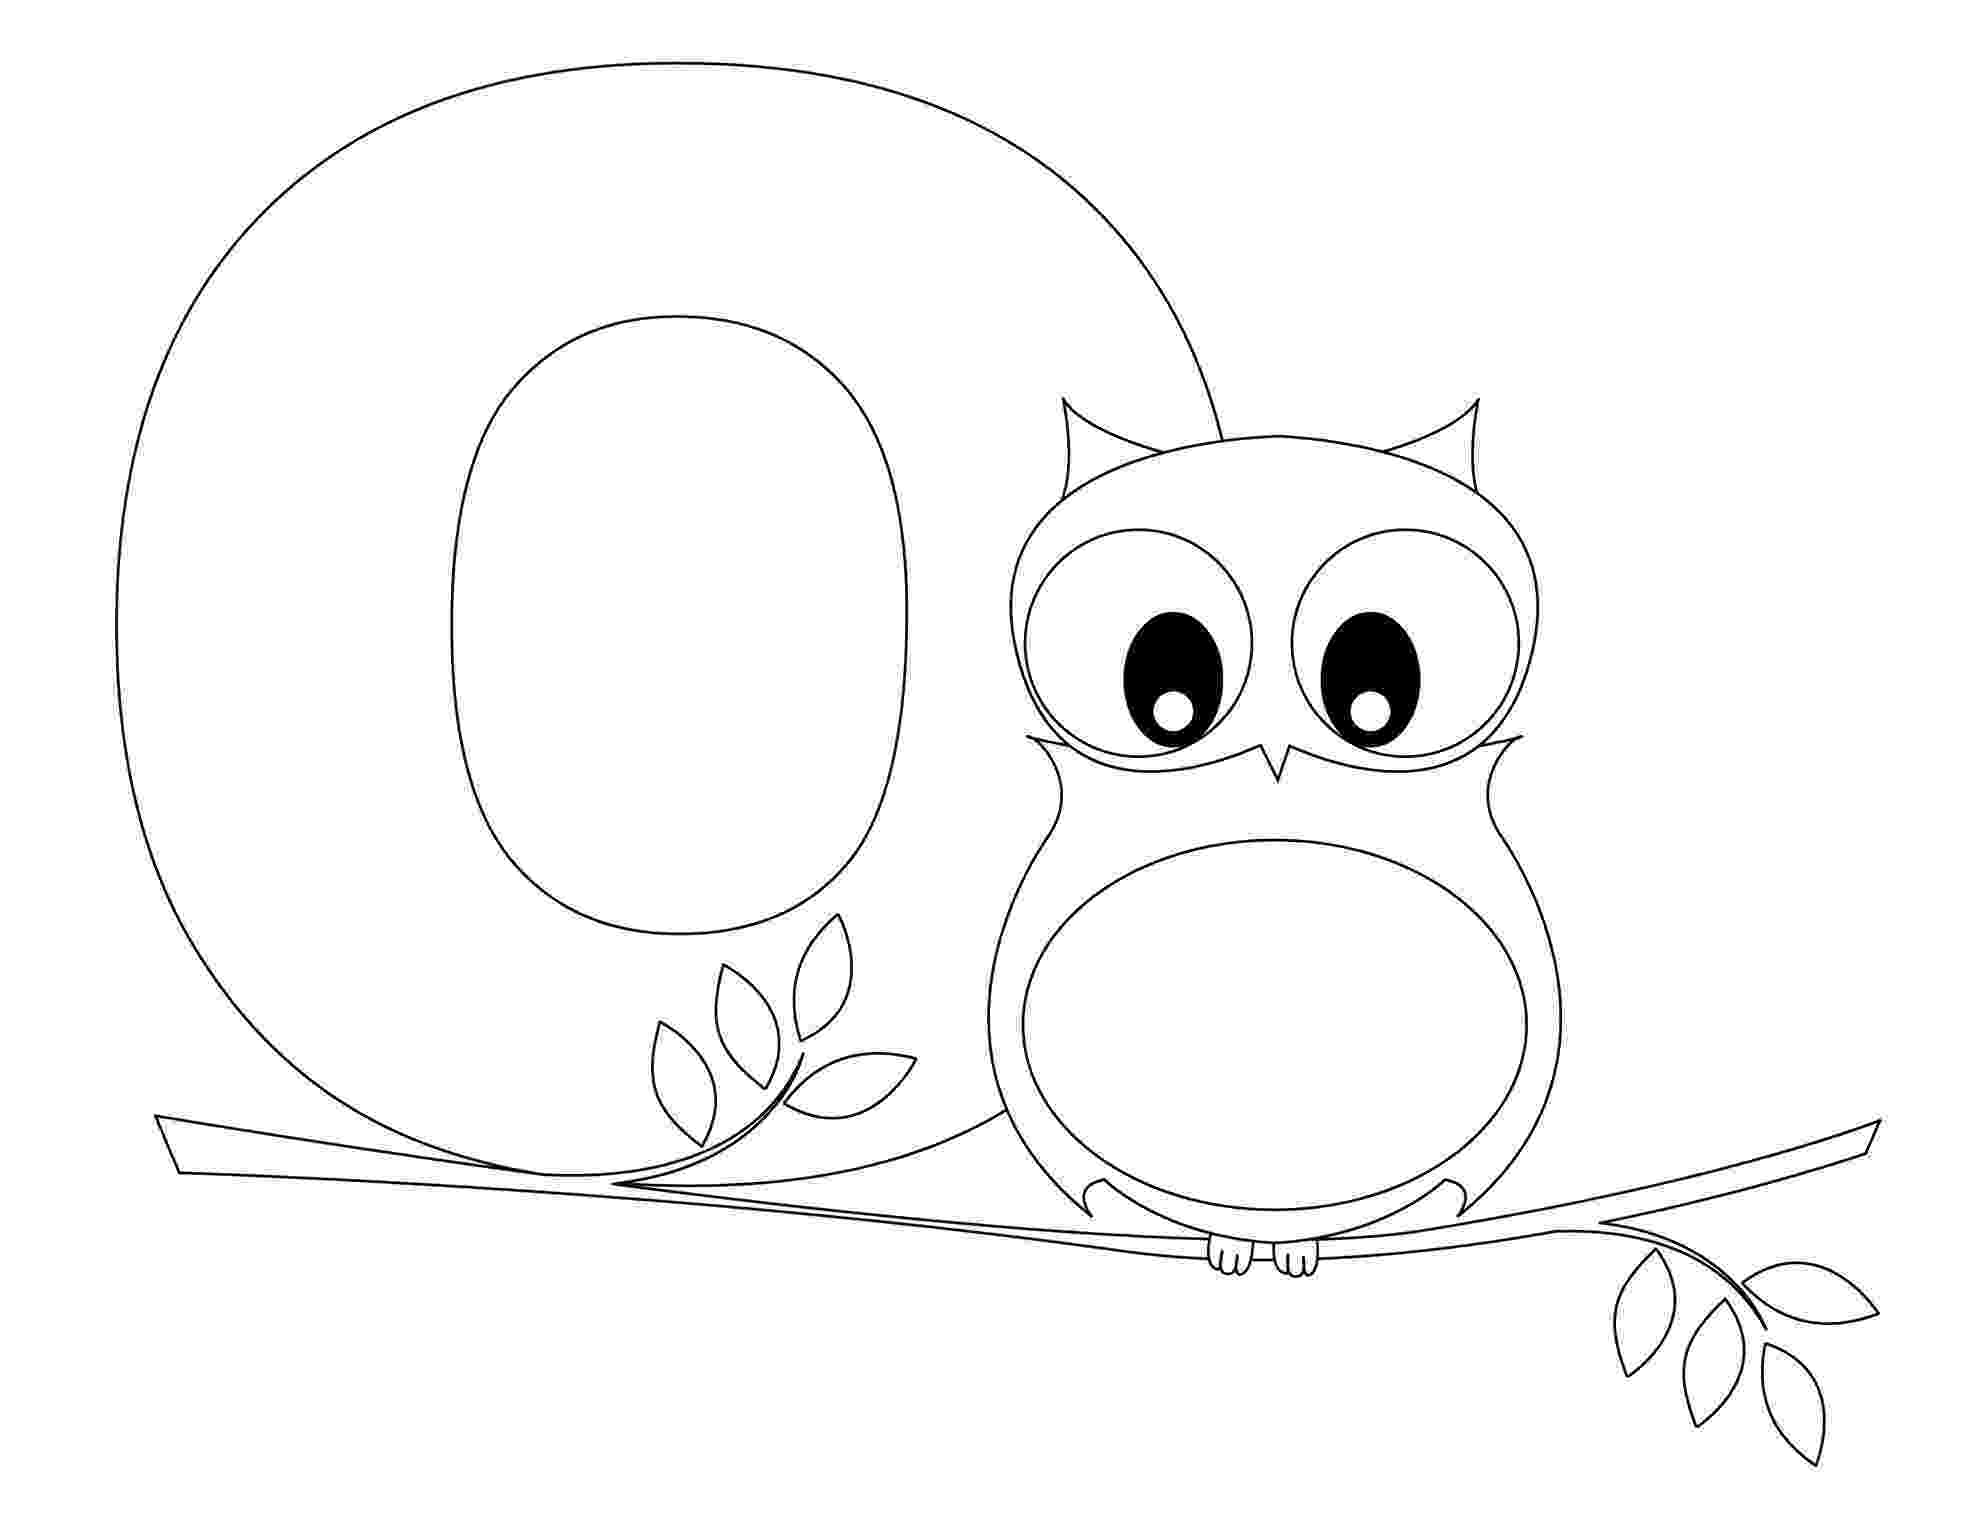 abc coloring sheets free printable abc coloring pages for kids abc coloring sheets